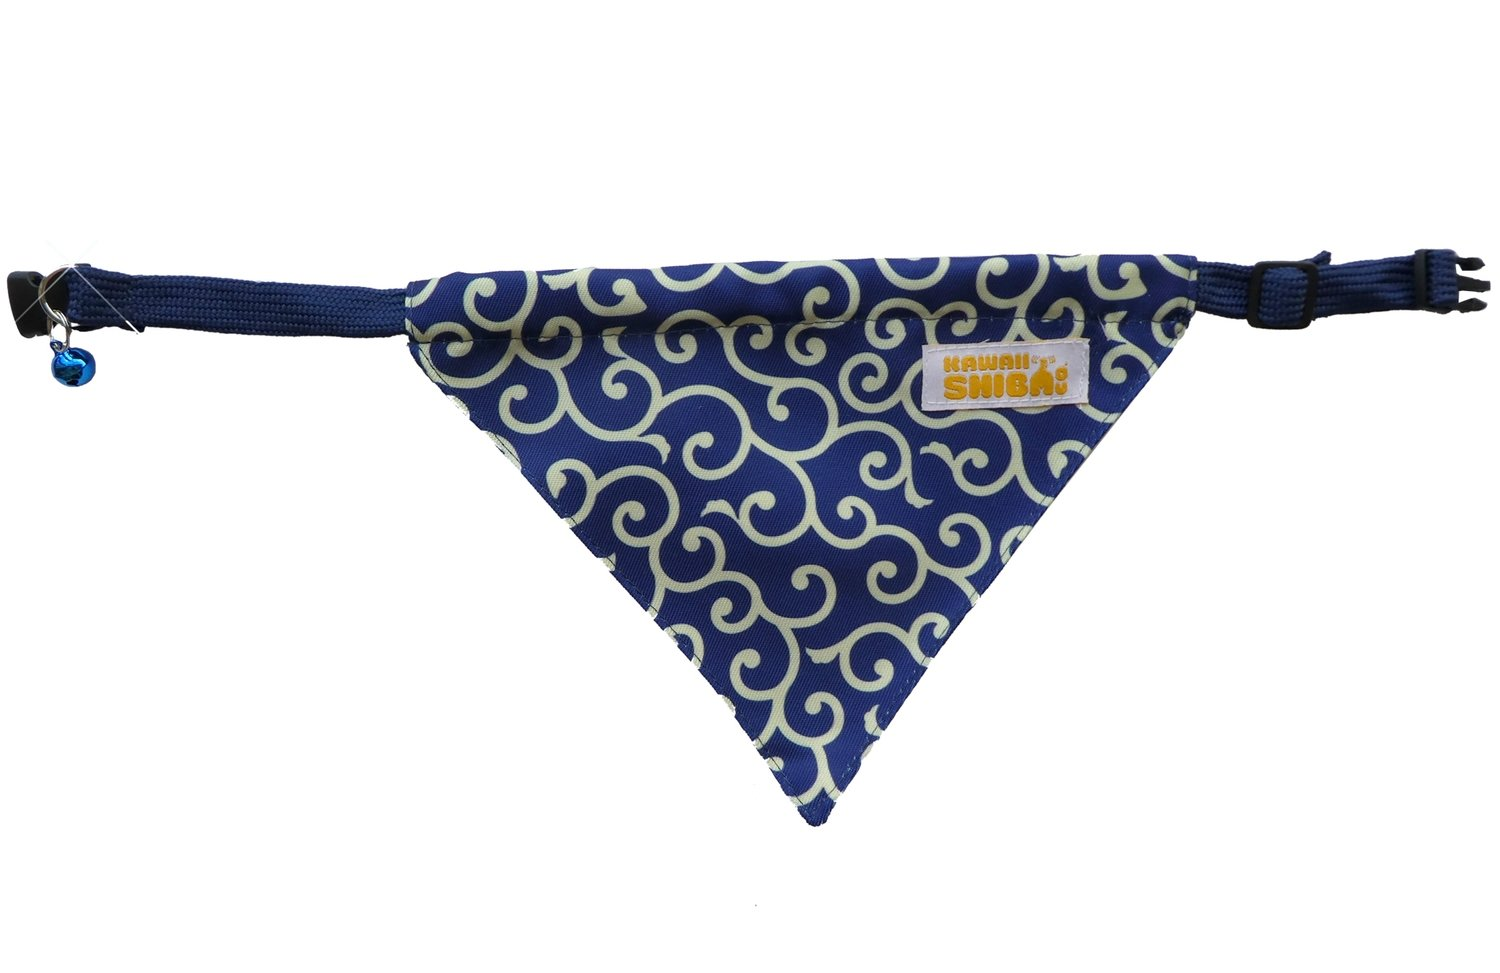 Kawaii Shiba Co. Blue Karakusa Japanese Shiba Inu Dog Bandana With Adjustable Collar